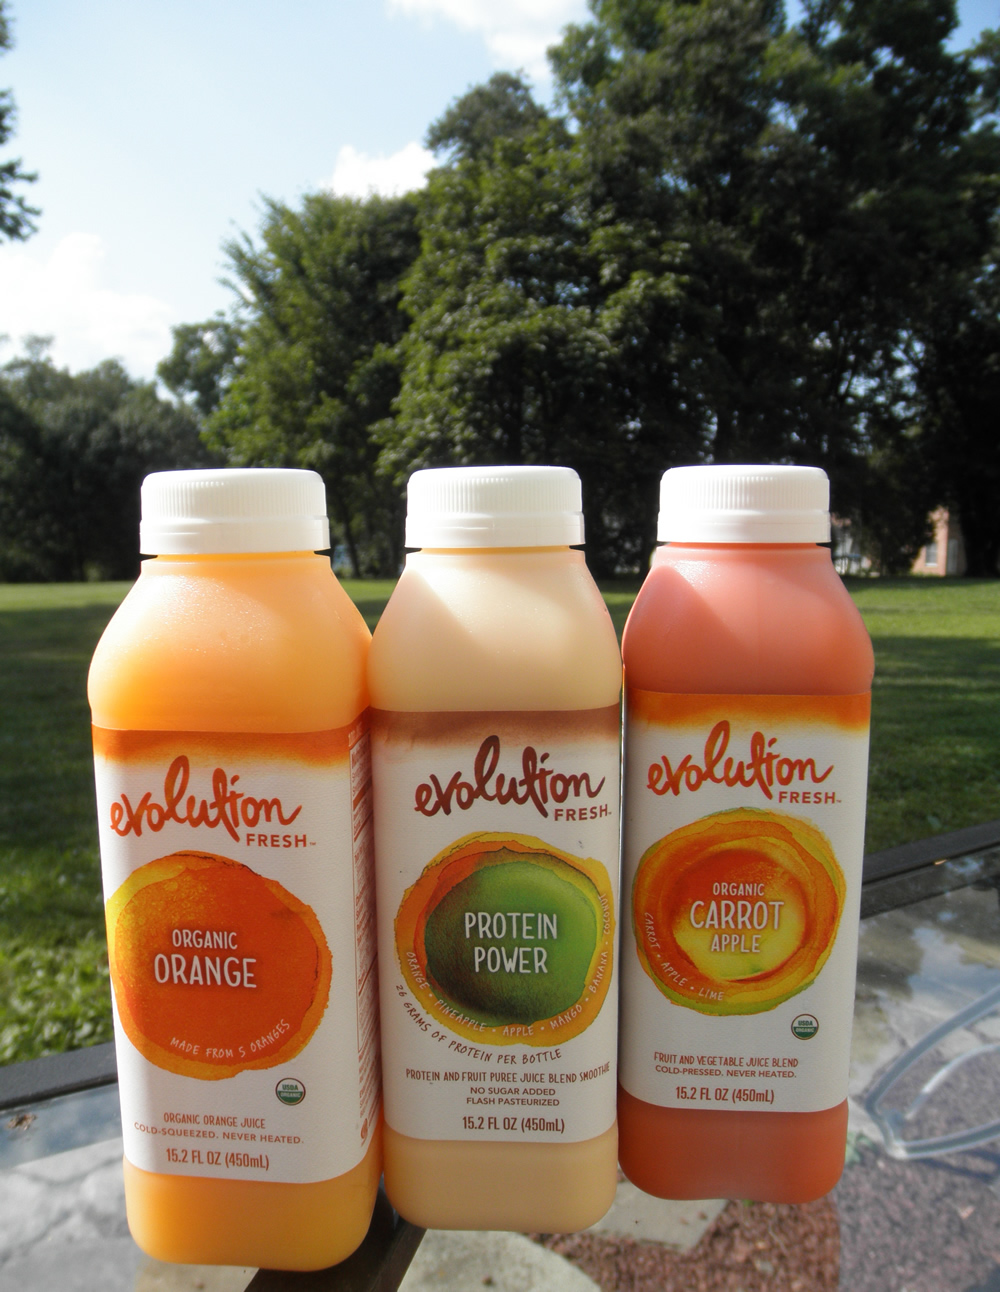 Evolution Fresh drinks #mc sponsored